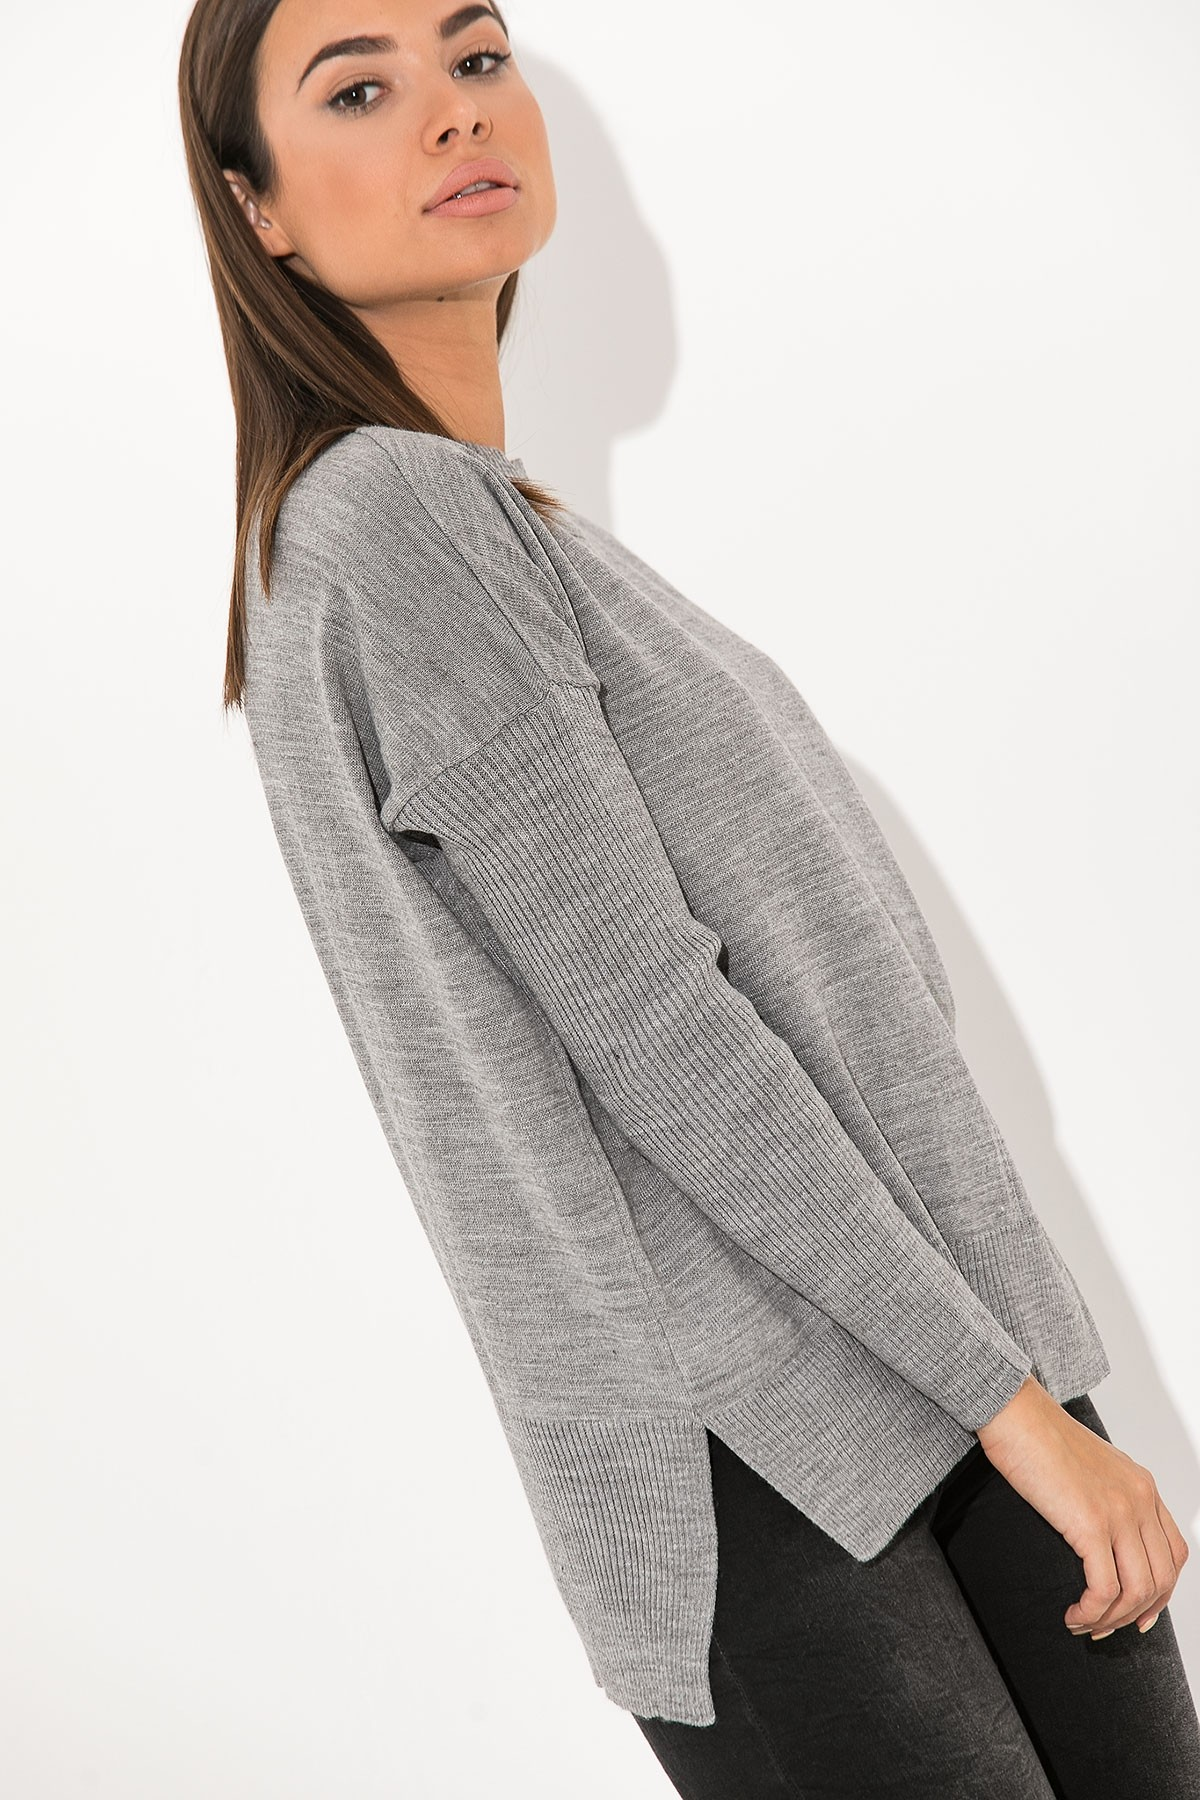 GRAY BASIC KNIT TOP